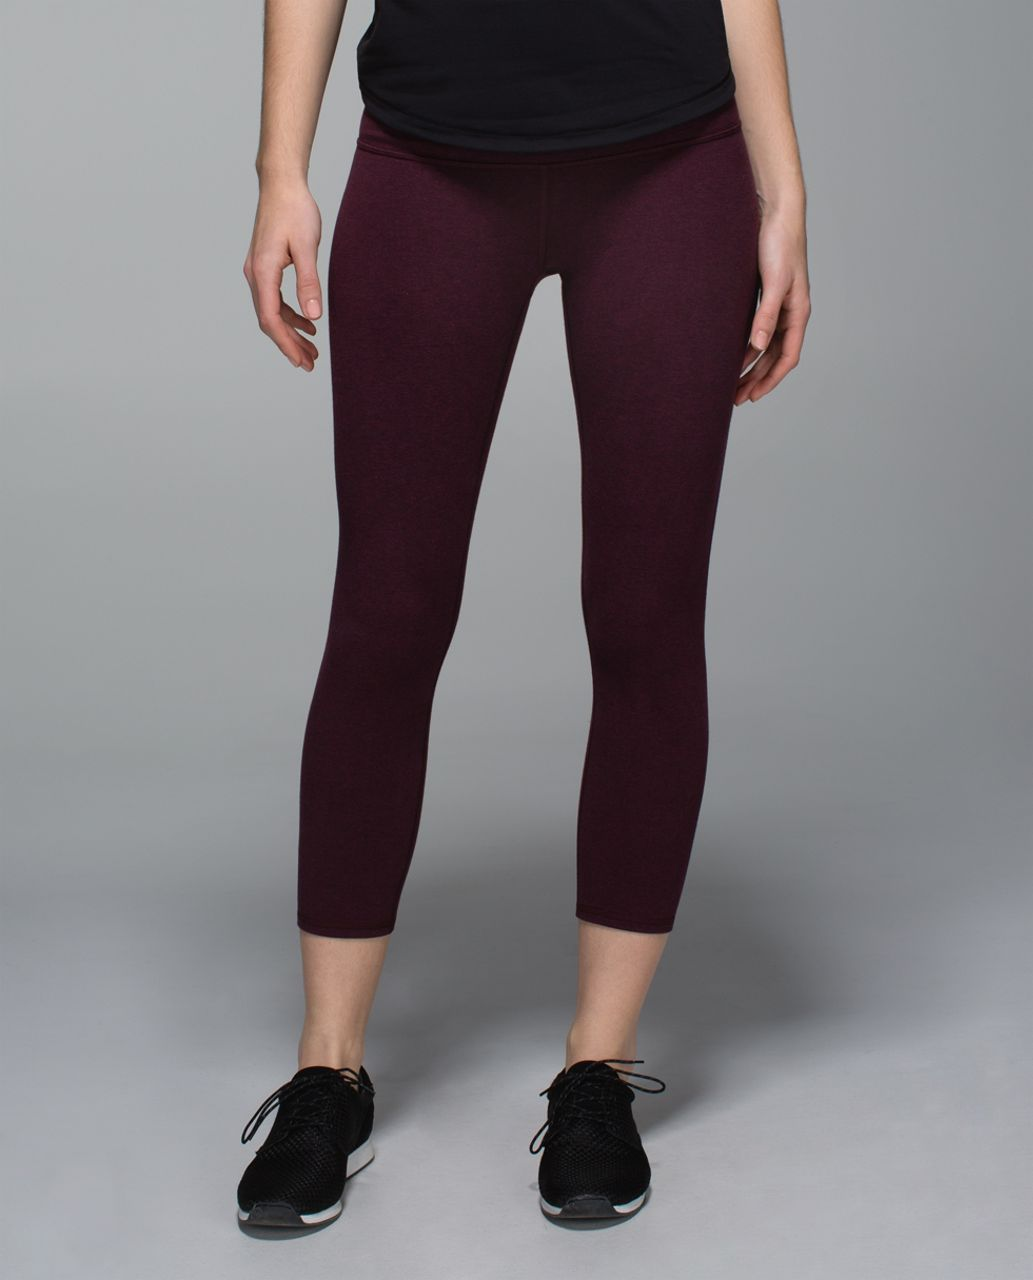 Lululemon Wunder Under Crop II *Cotton (Roll Down) - Heathered Bordeaux Drama